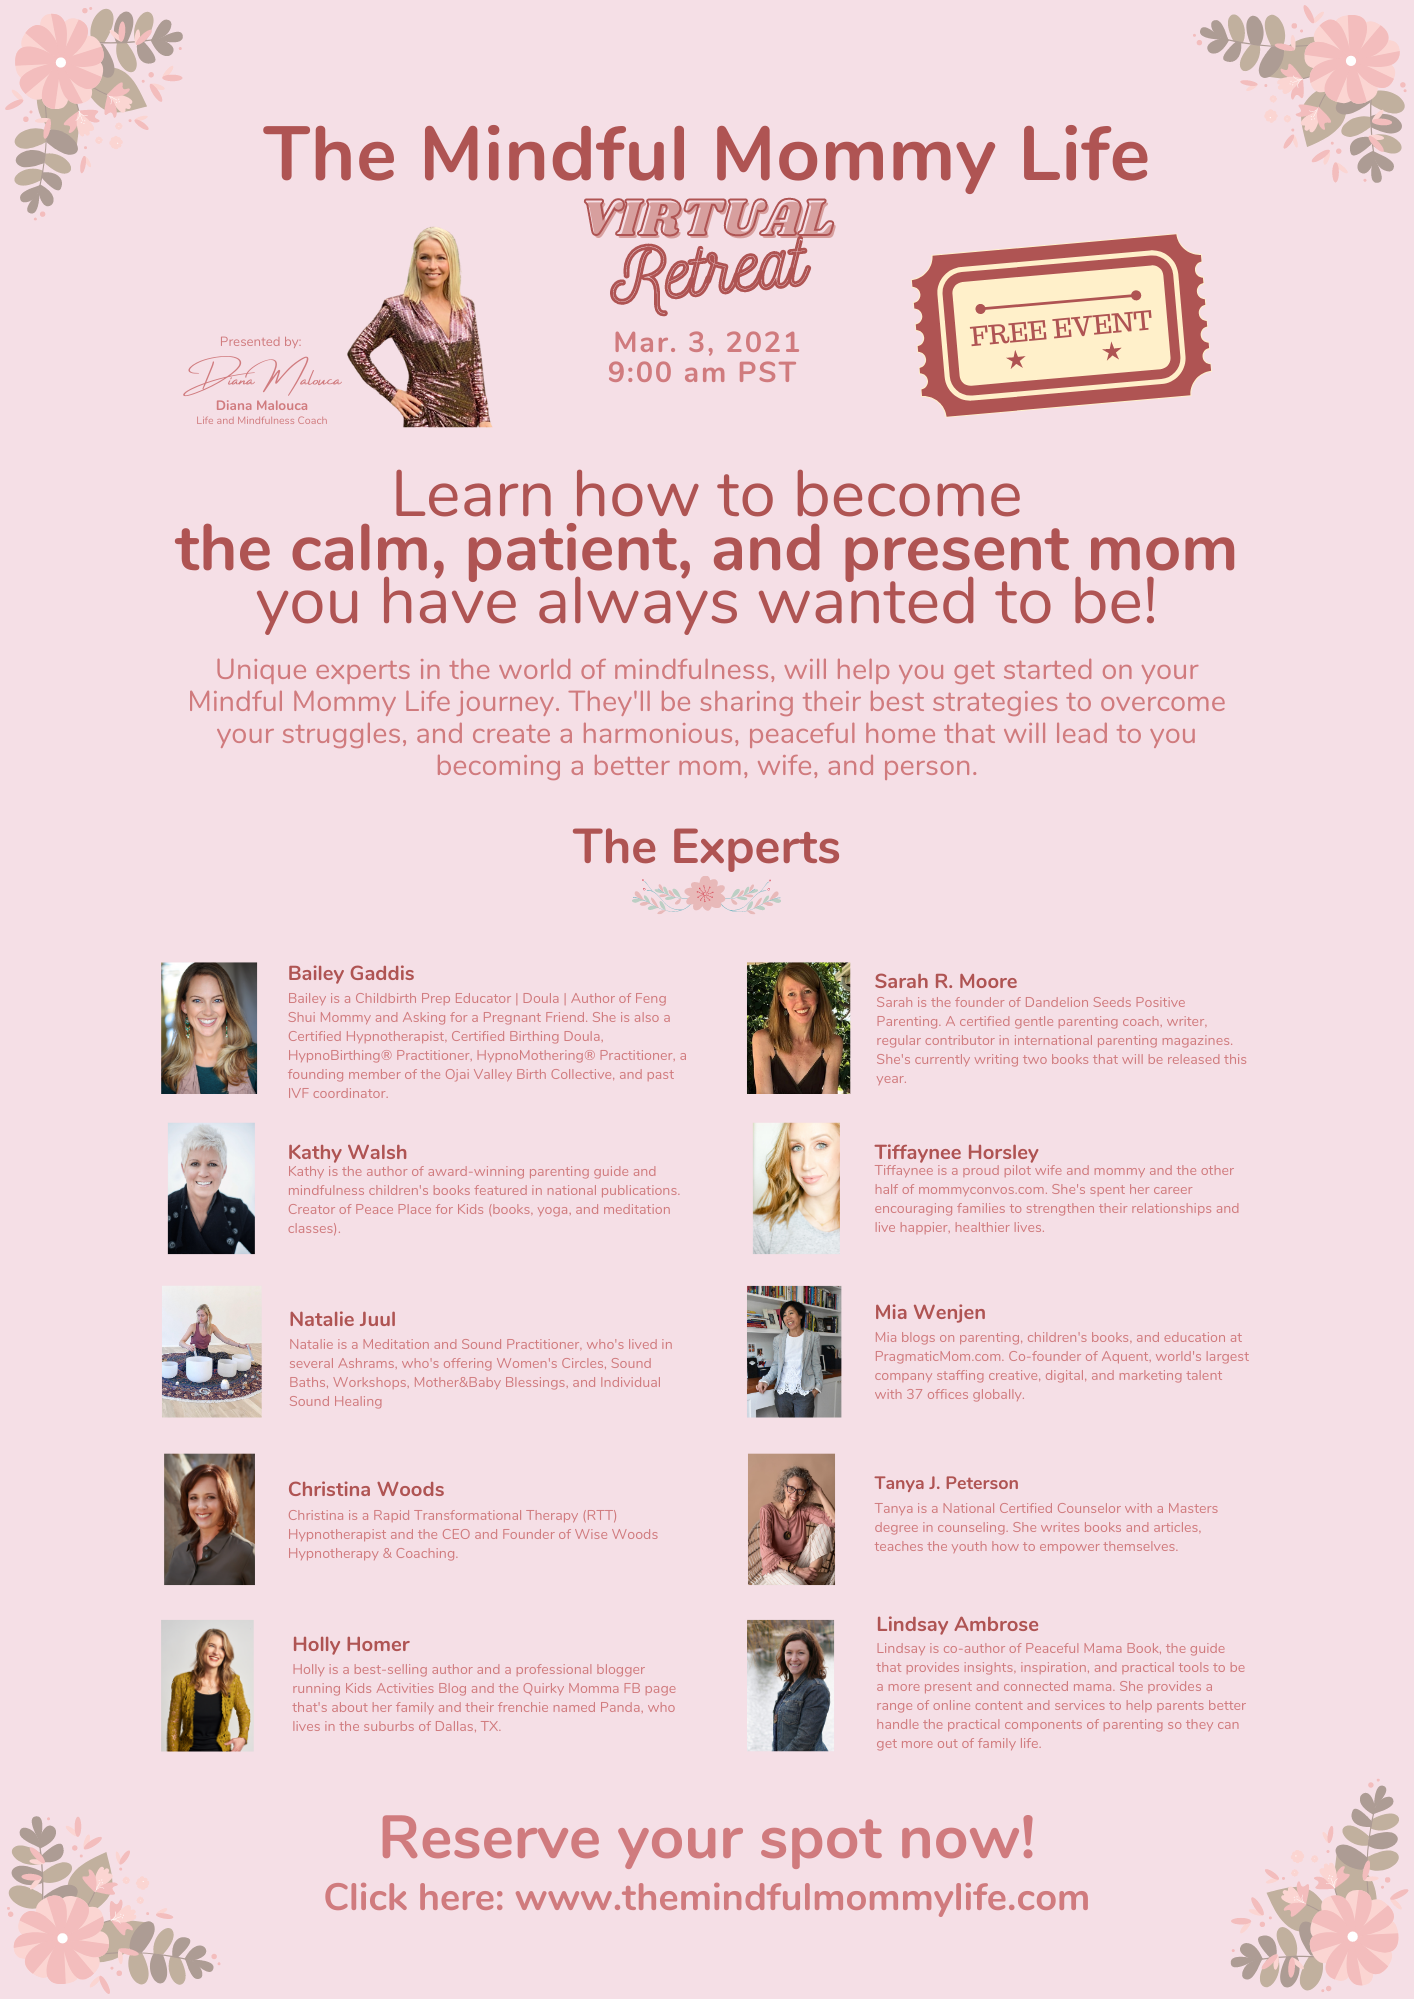 The Mindful Mommy Life Virtual Retreat